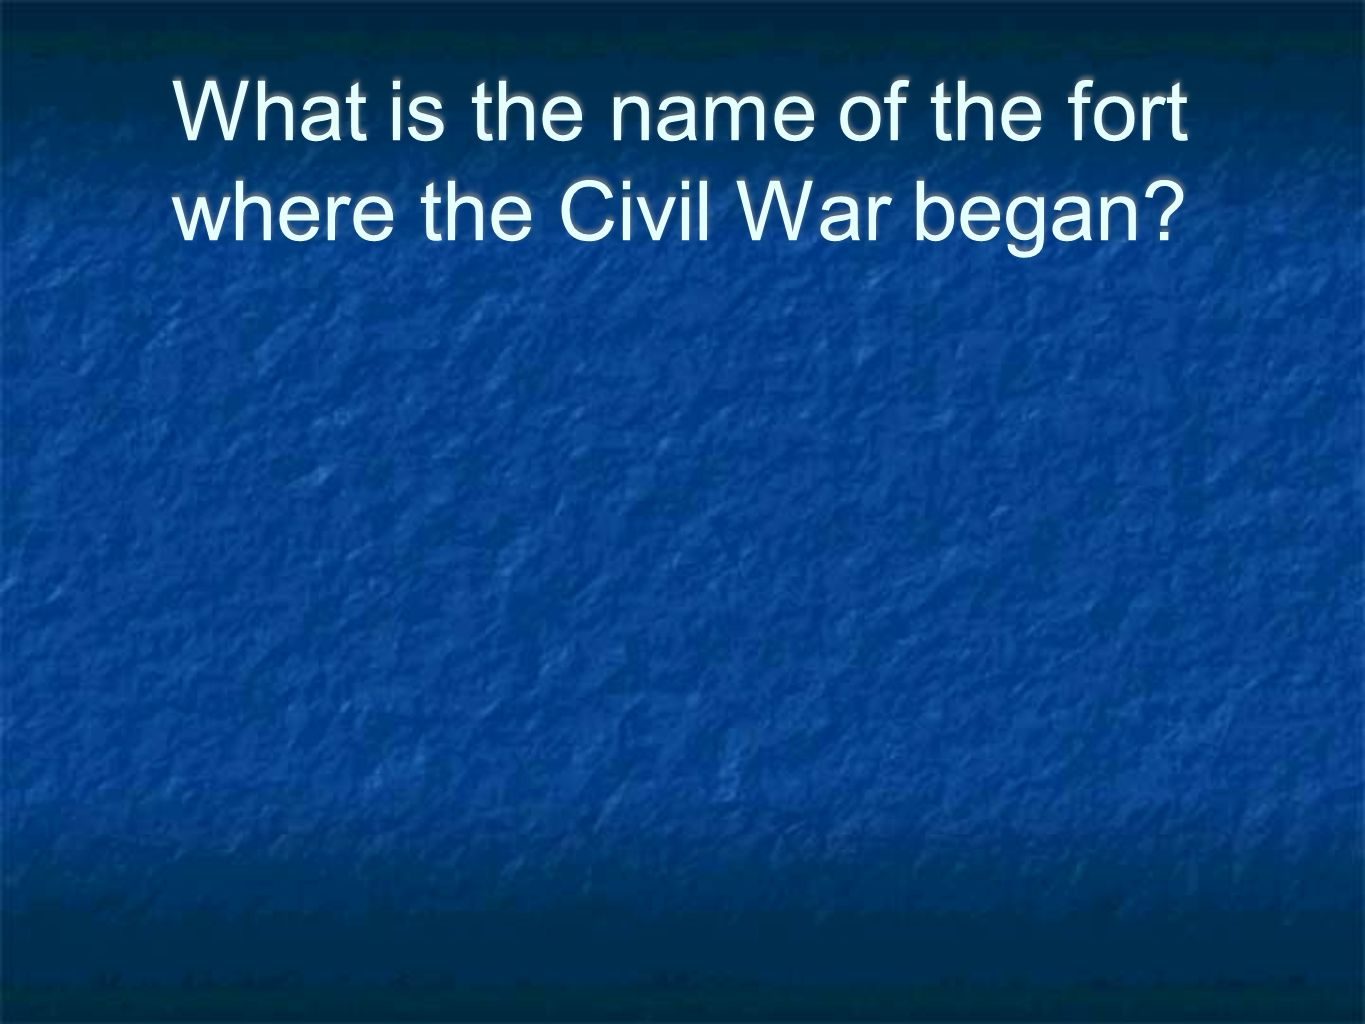 What is the name of the fort where the Civil War began